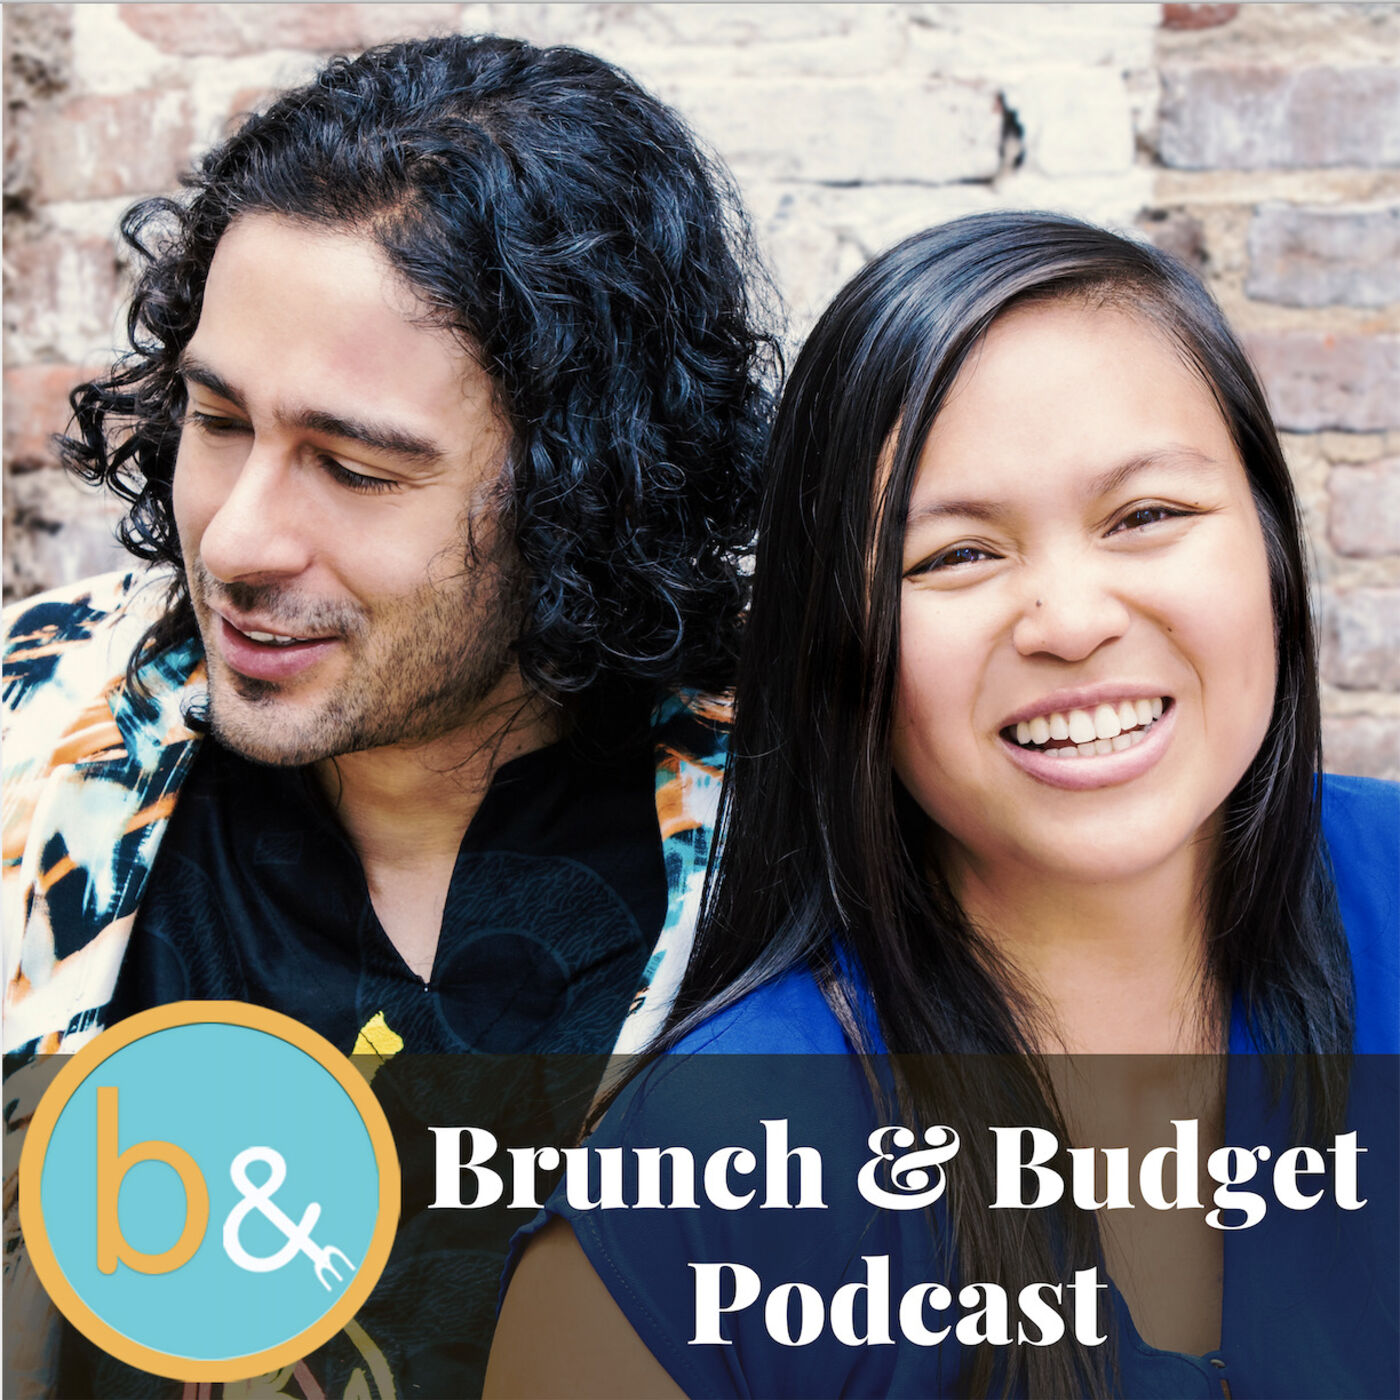 b&b227: Put your money where your mouth is - dismantling systemic racism with your dollars